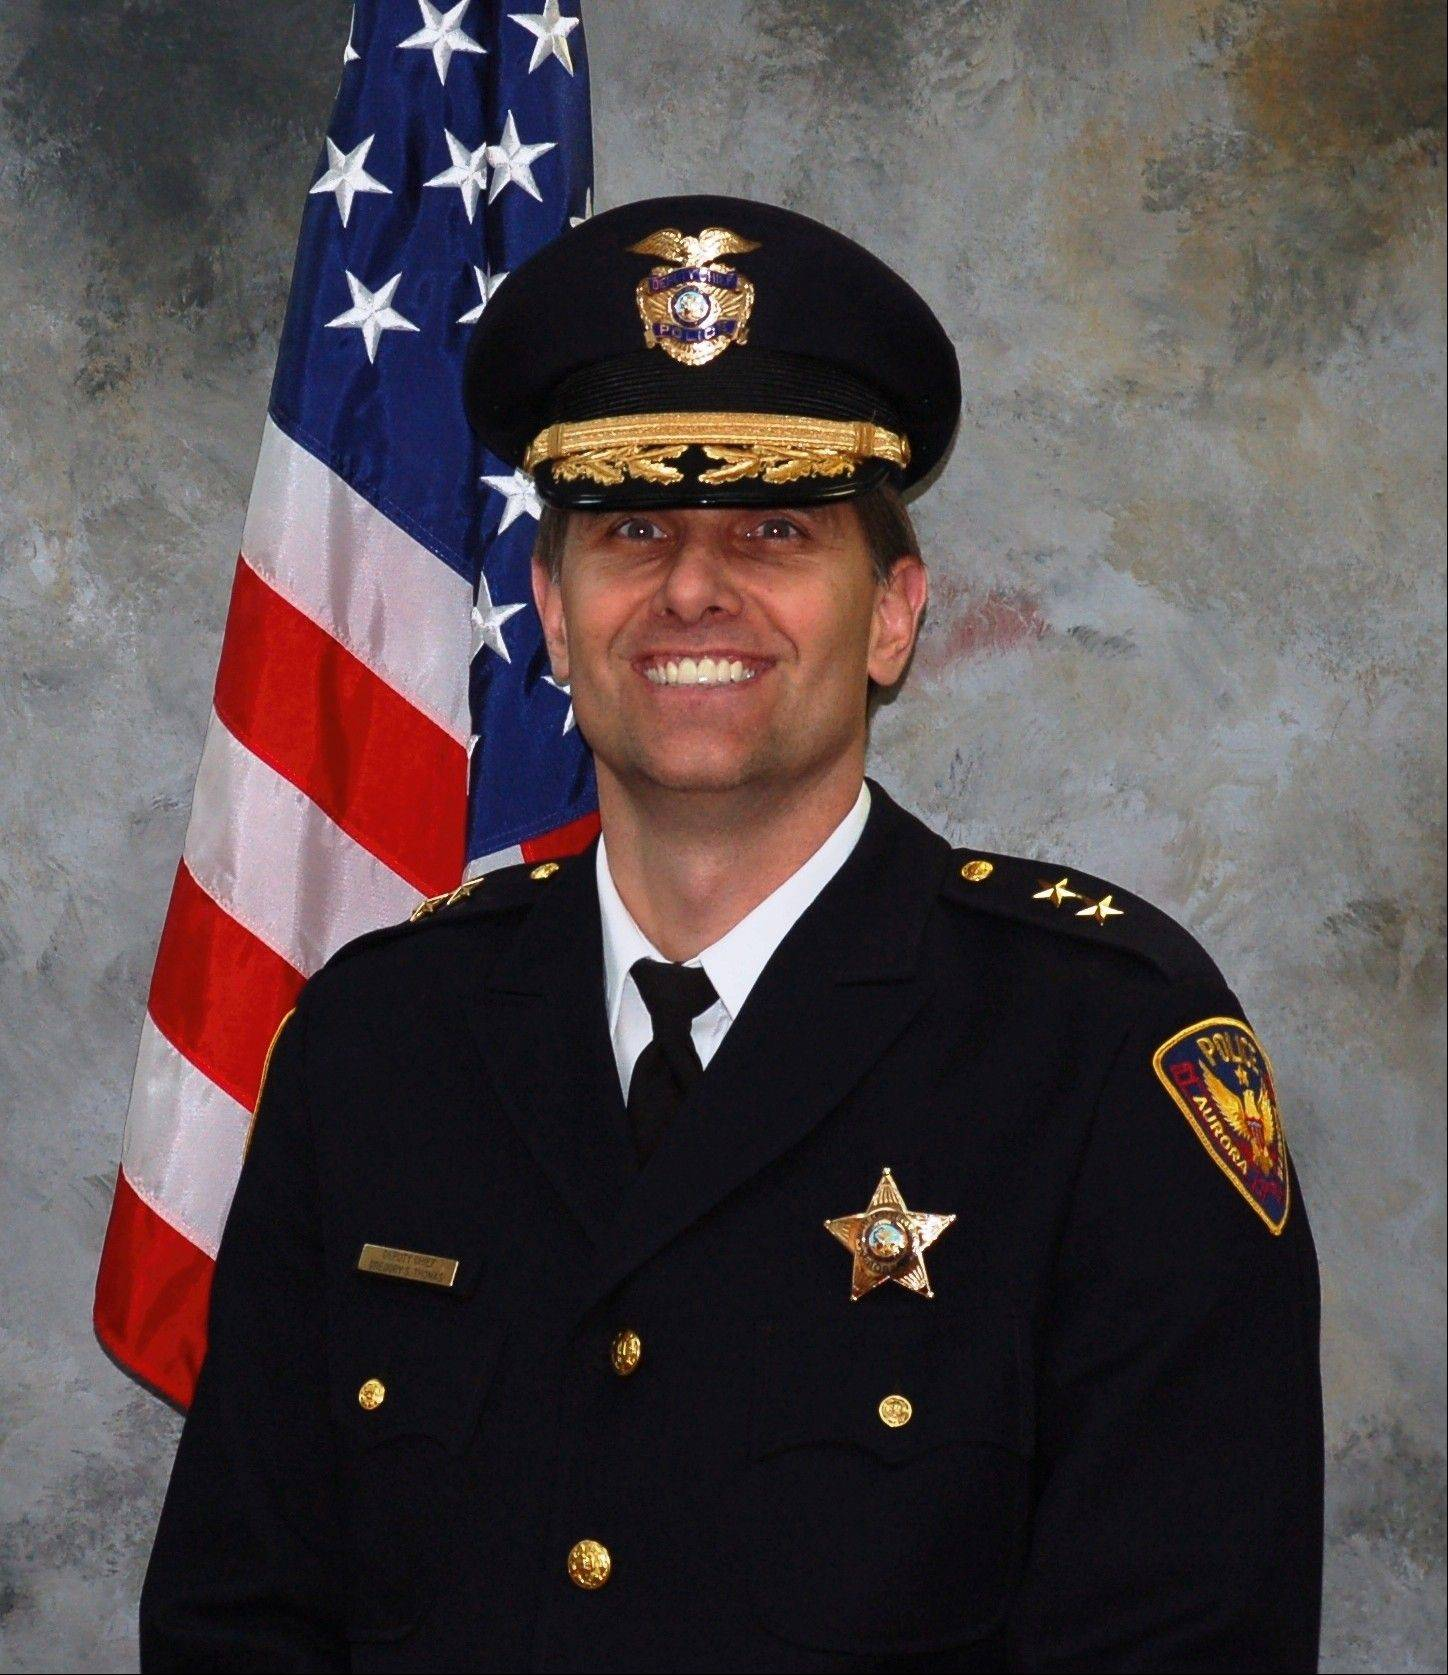 Aurora police Chief Greg Thomas